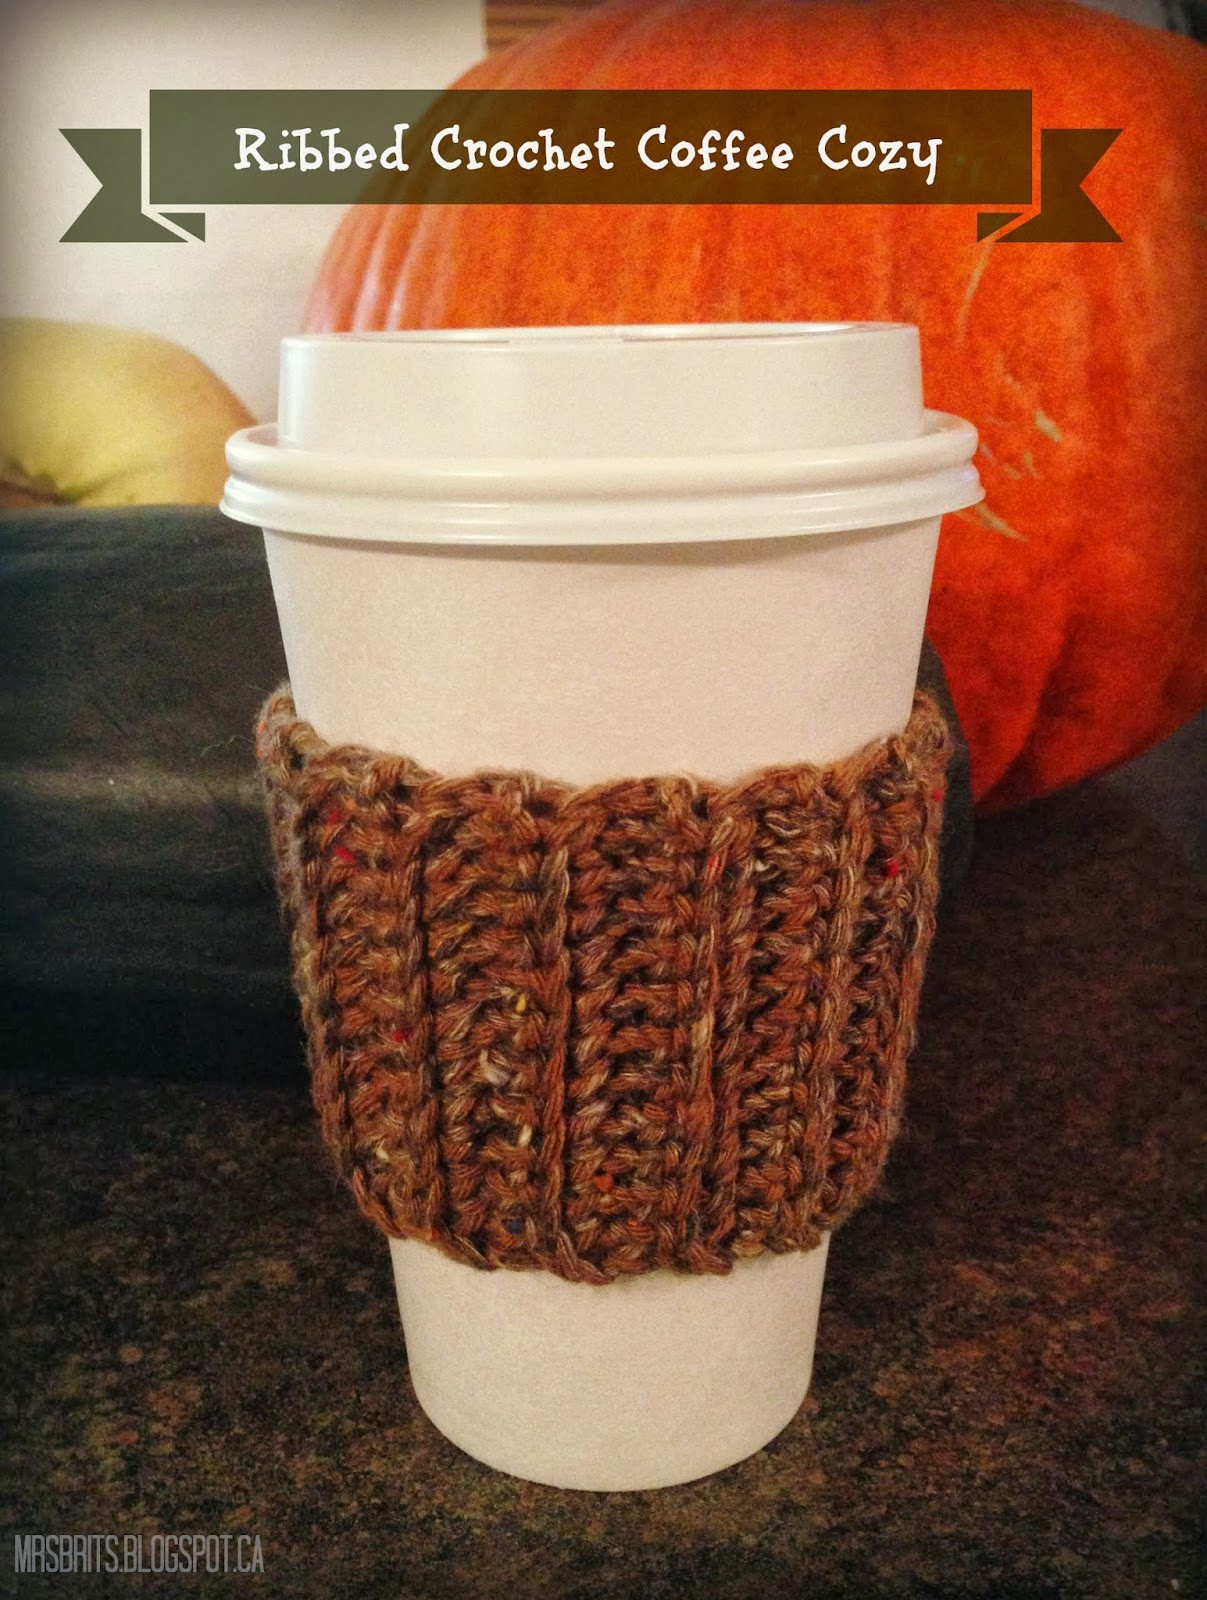 Crochet Coffee Cup Cozy Unique Mrsbrits Ribbed Coffee Cozy Crochet Pattern Of Crochet Coffee Cup Cozy Awesome Textured Coffee Mug Cozy Crochet Pattern